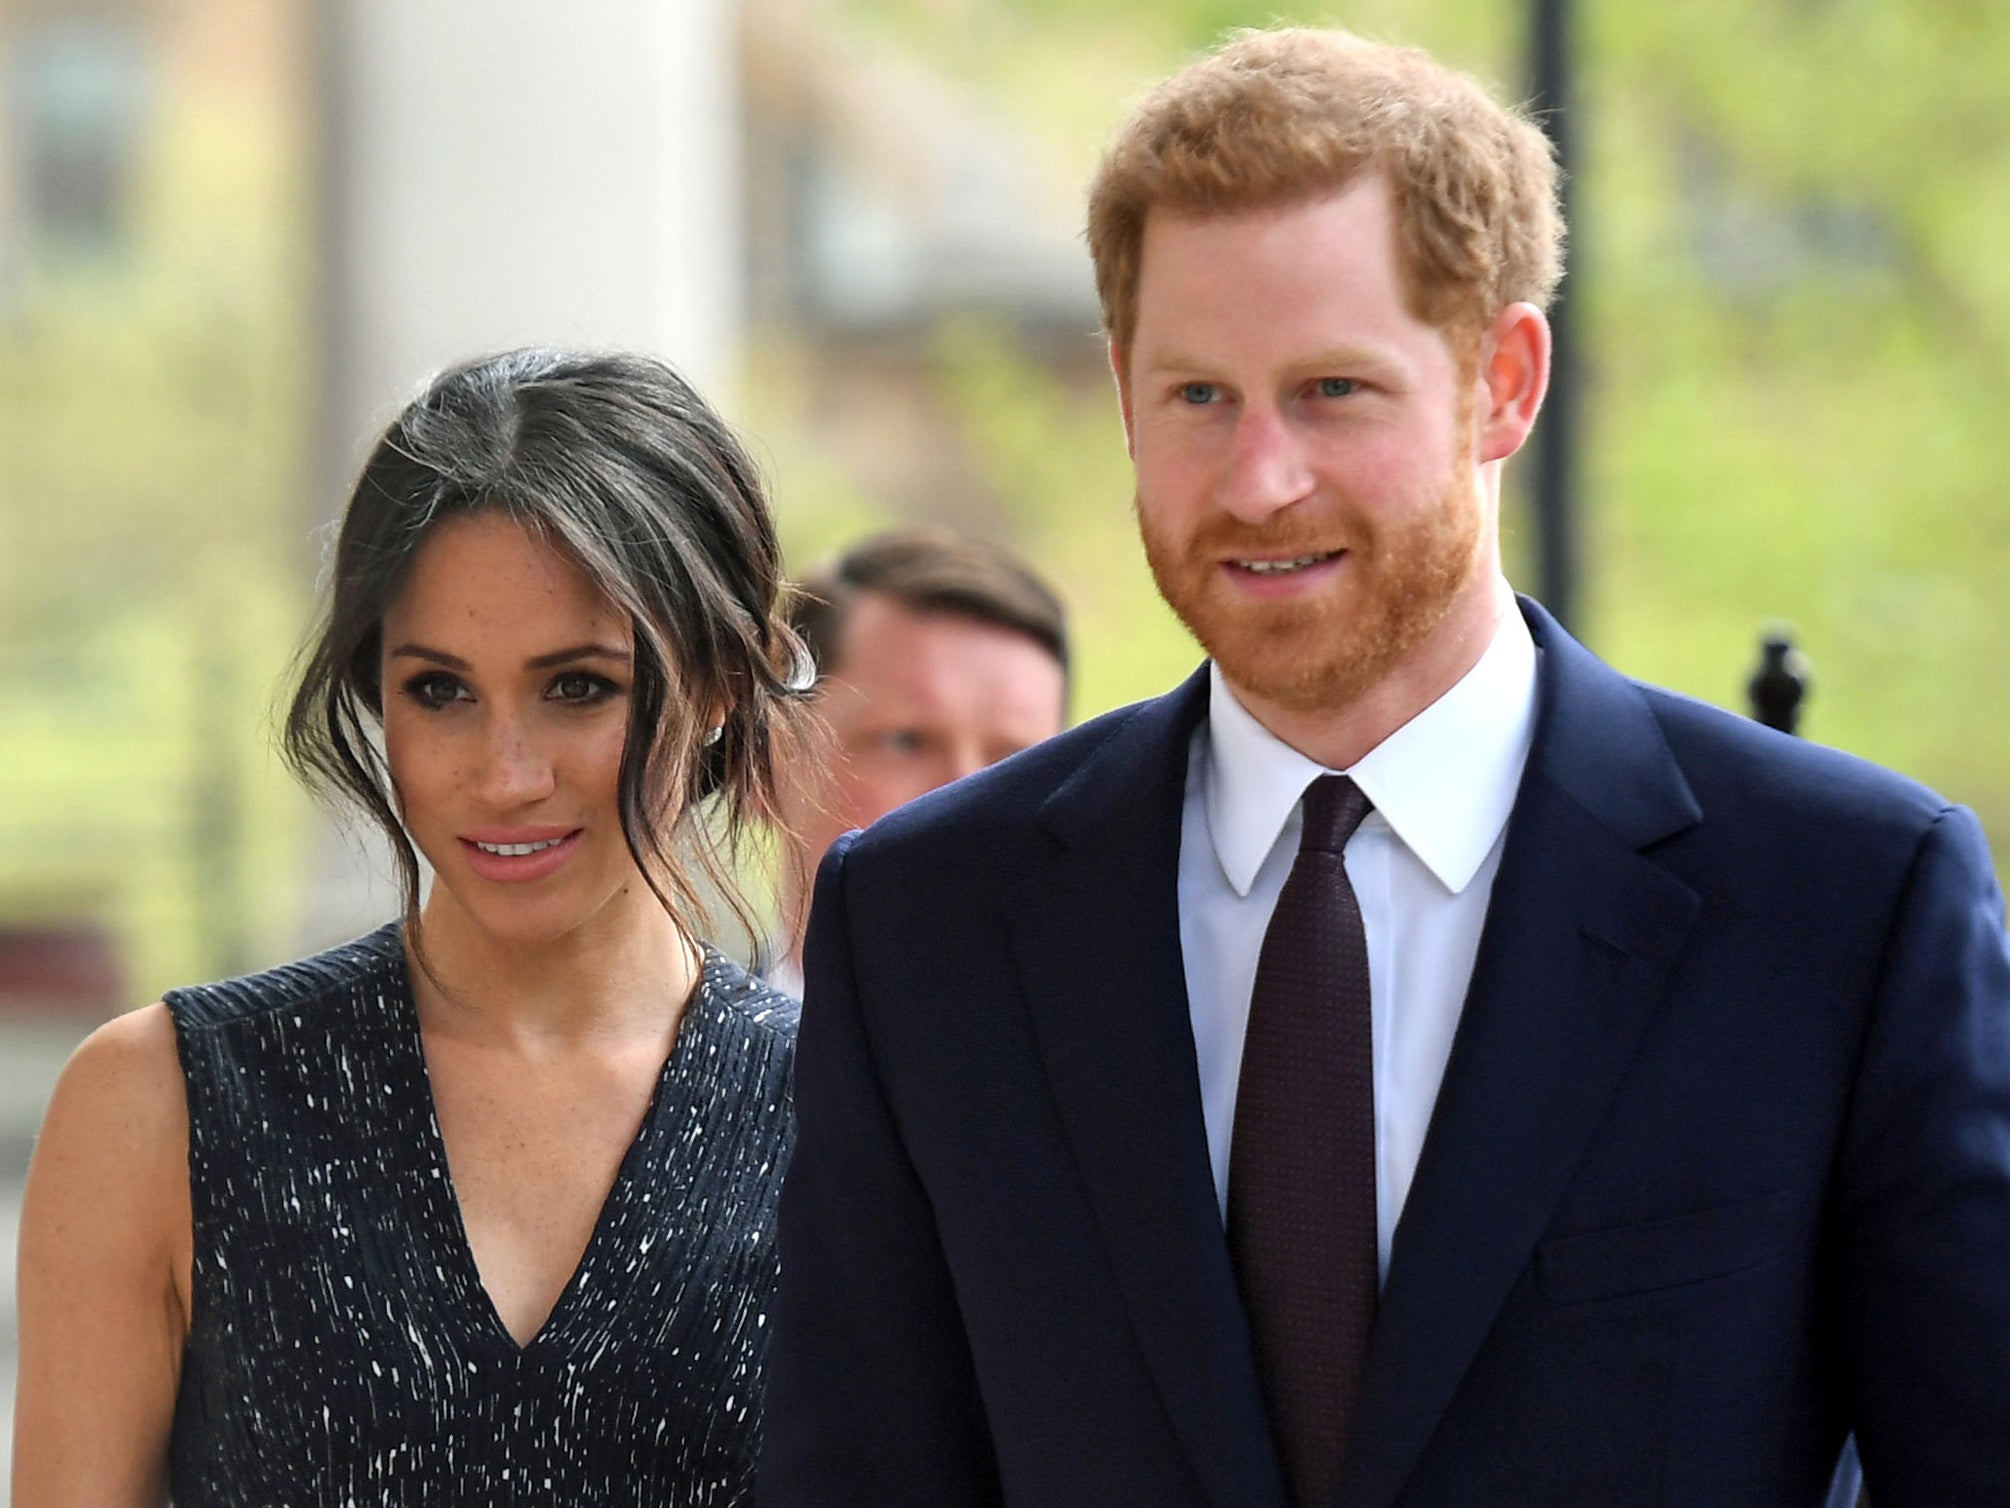 meghan markle and prince harry set up new permanent home in santa barbara the independent the independent meghan markle and prince harry set up